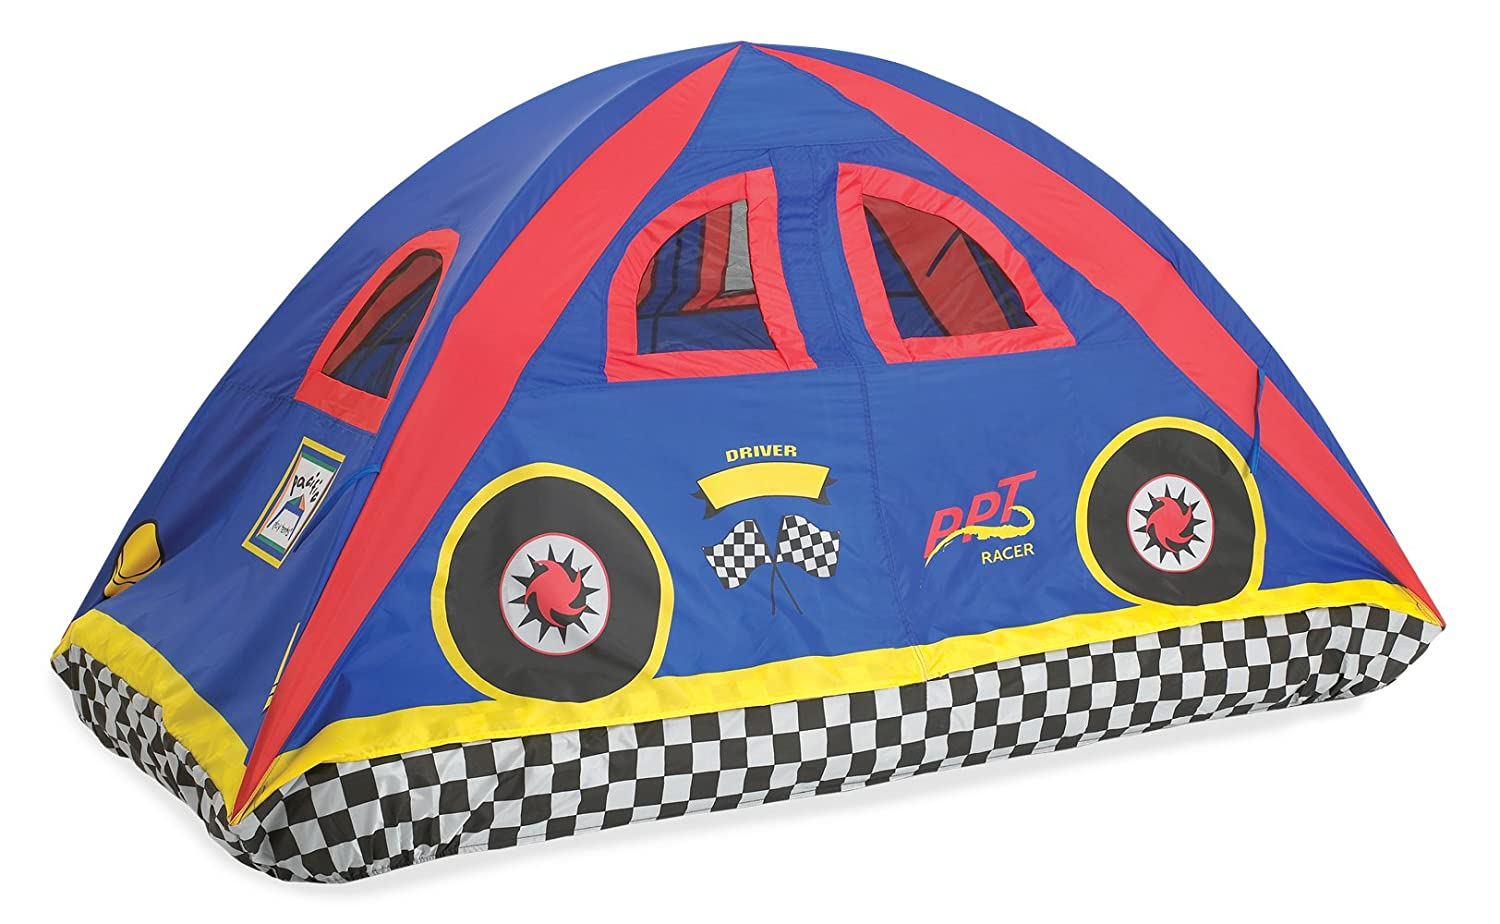 Amazon.com Pacific Play Tents Kids Rad Racer Bed Tent Playhouse - Twin Size Toys u0026 Games  sc 1 st  Amazon.com & Amazon.com: Pacific Play Tents Kids Rad Racer Bed Tent Playhouse ...